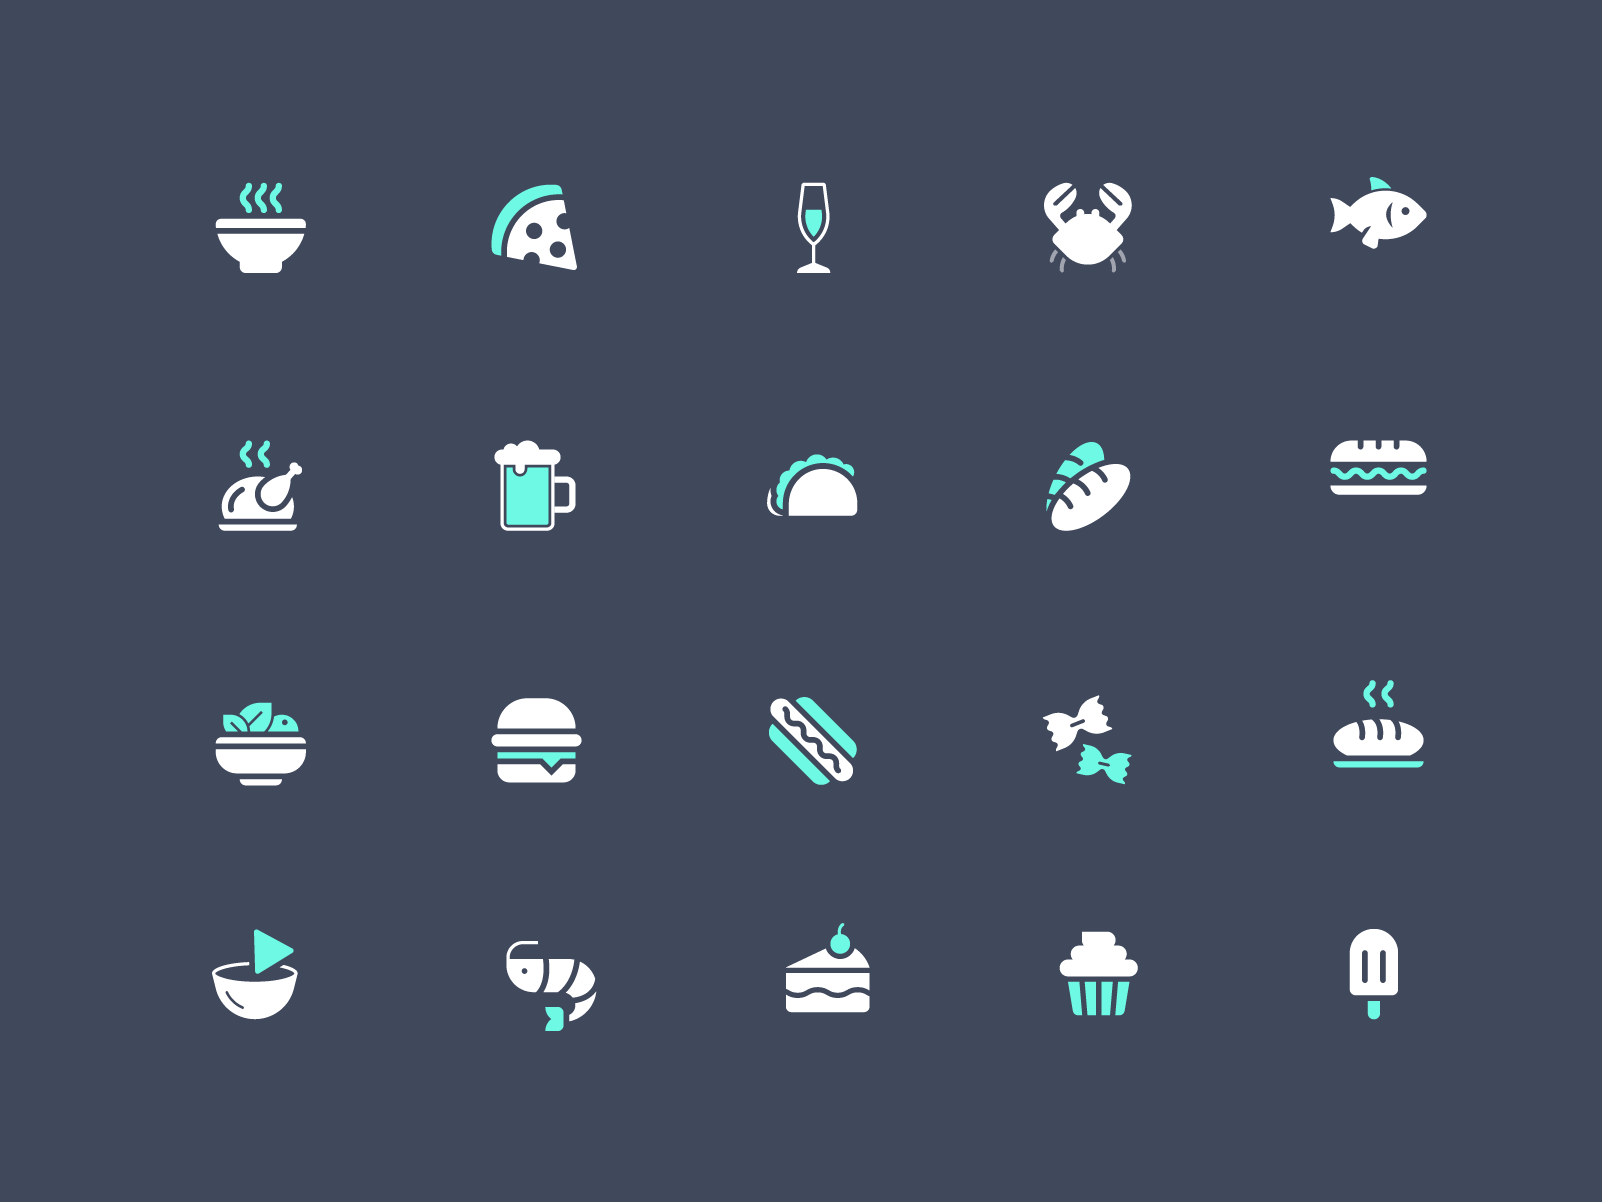 Point of putchase icons 2  2x